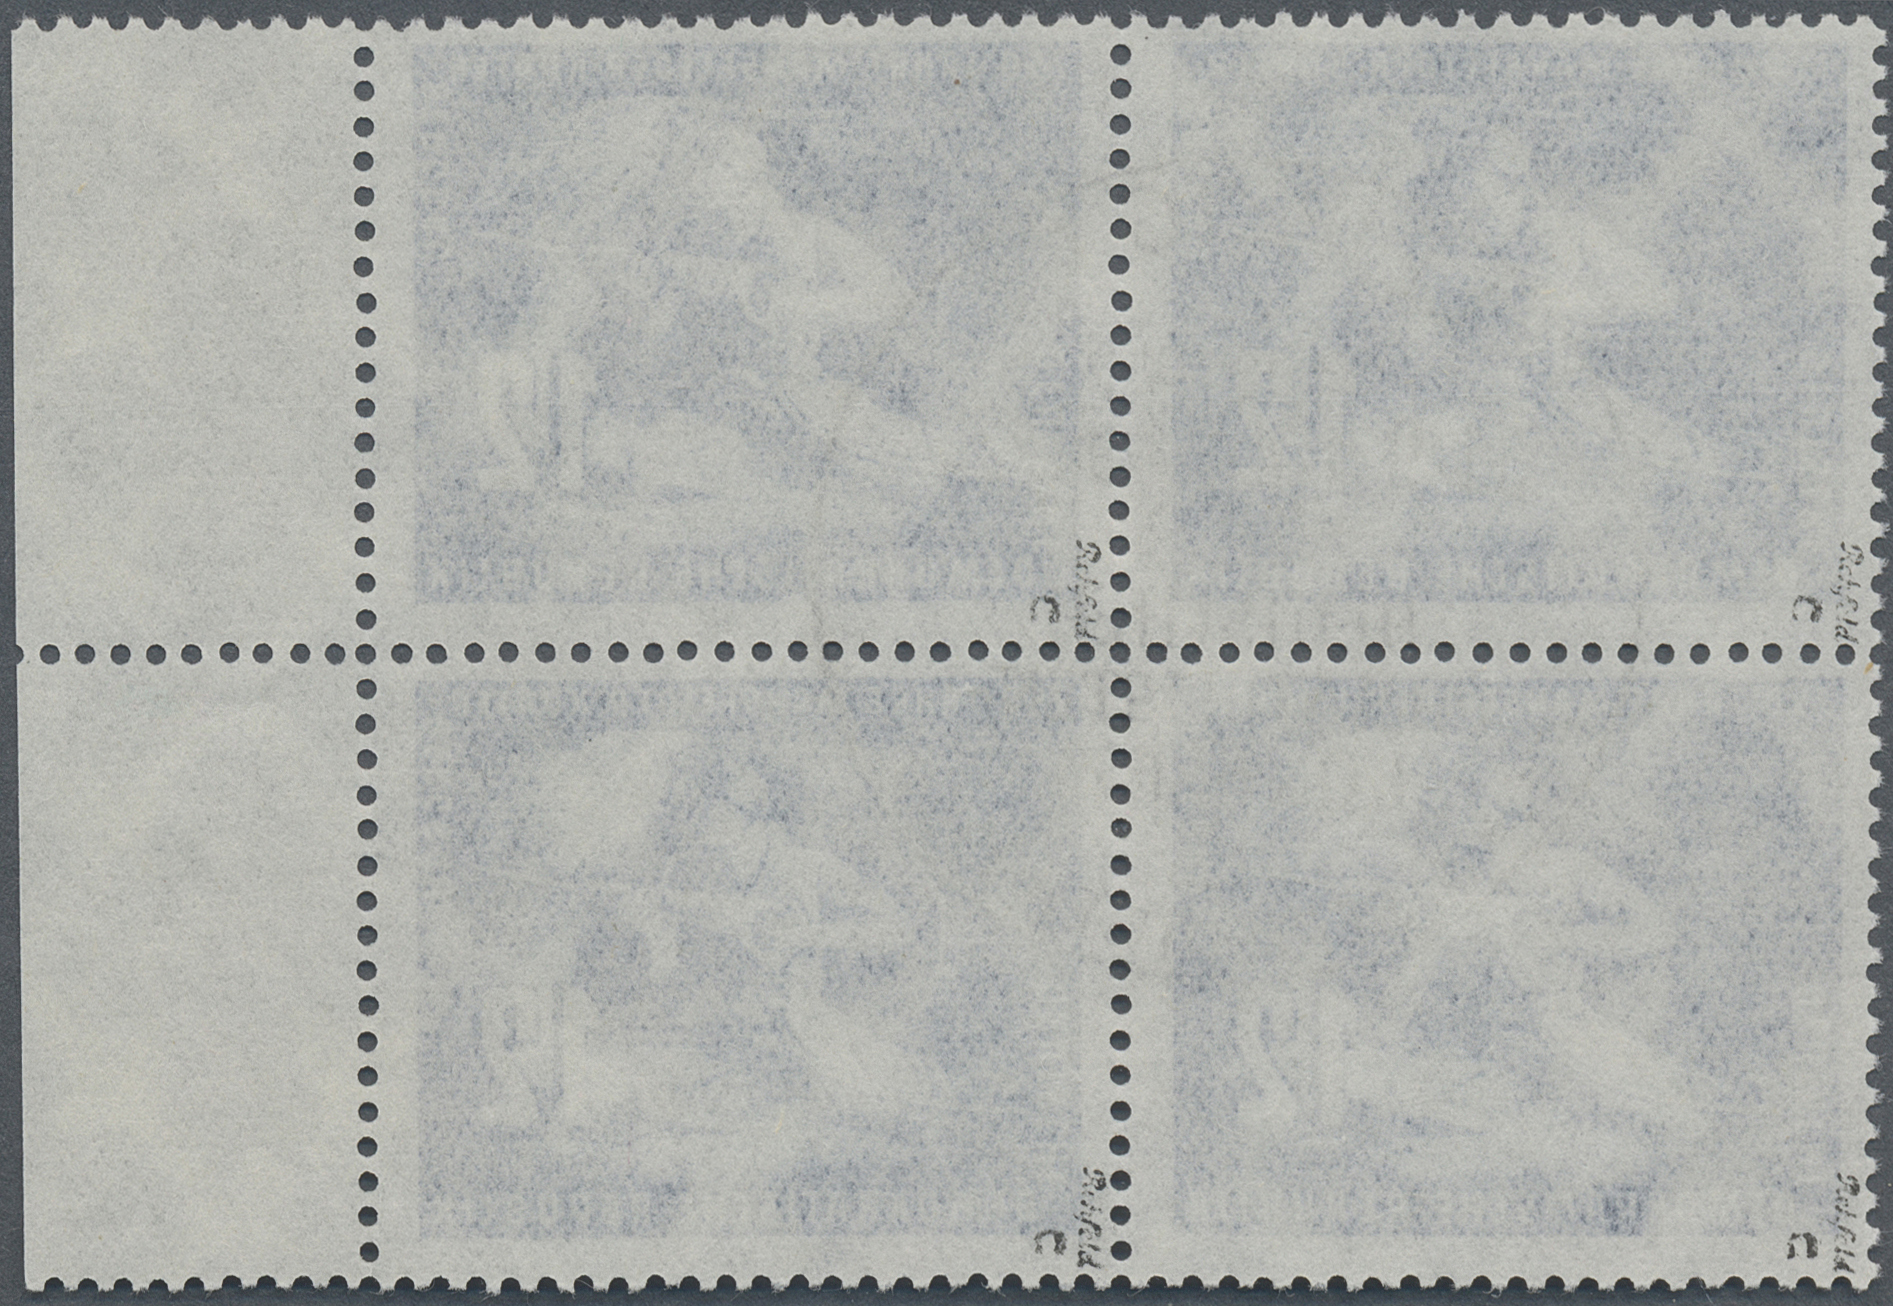 Lot 20194 - ddr  -  Auktionshaus Christoph Gärtner GmbH & Co. KG Auction #40 Germany, Picture Post Cards, Collections Overseas, Thematics